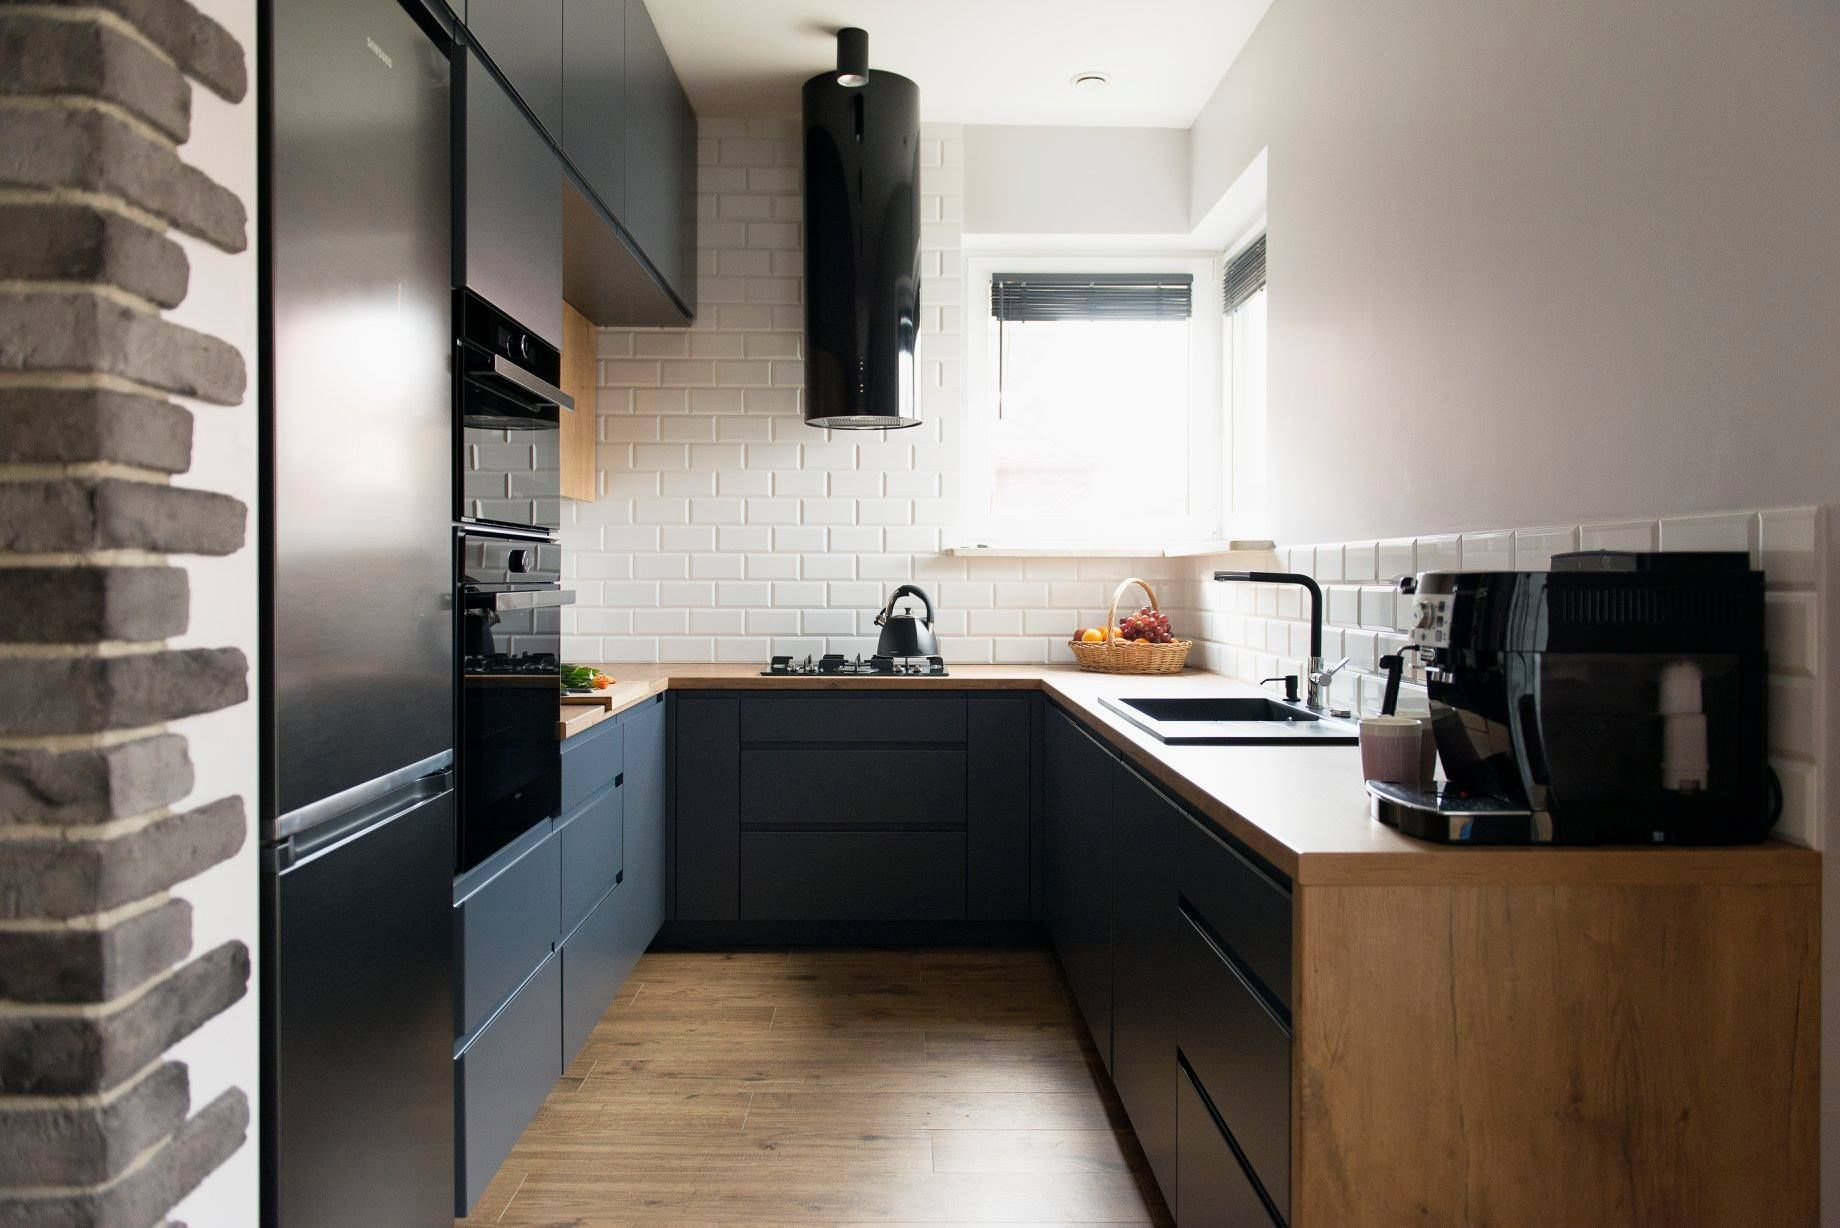 Okap Kominowy Cylindro Or Black Nortberg In 2021 Home Decor Kitchen Home